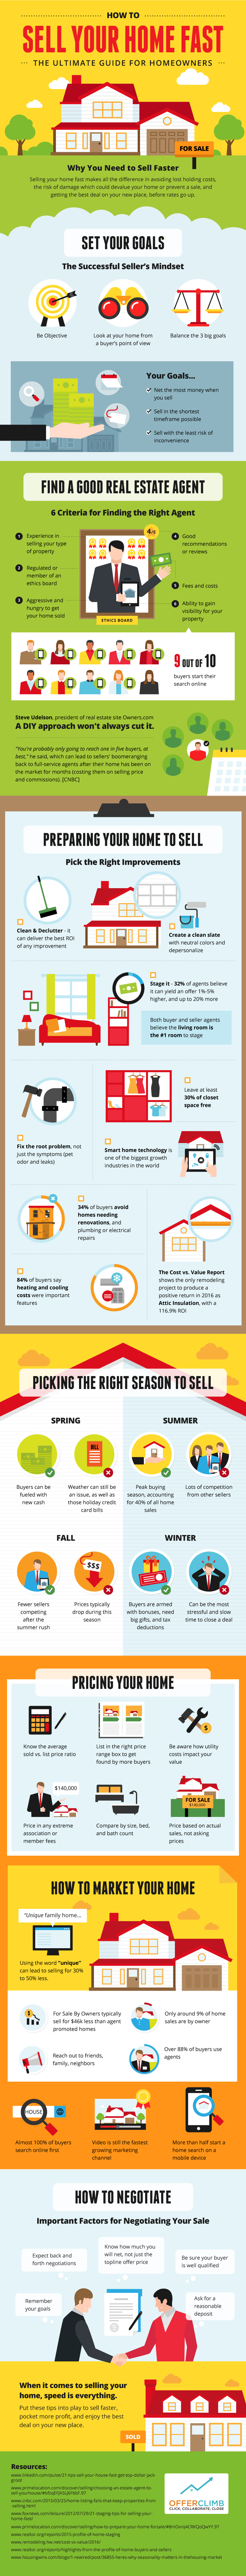 infographic to help you sell your home fast in 2019